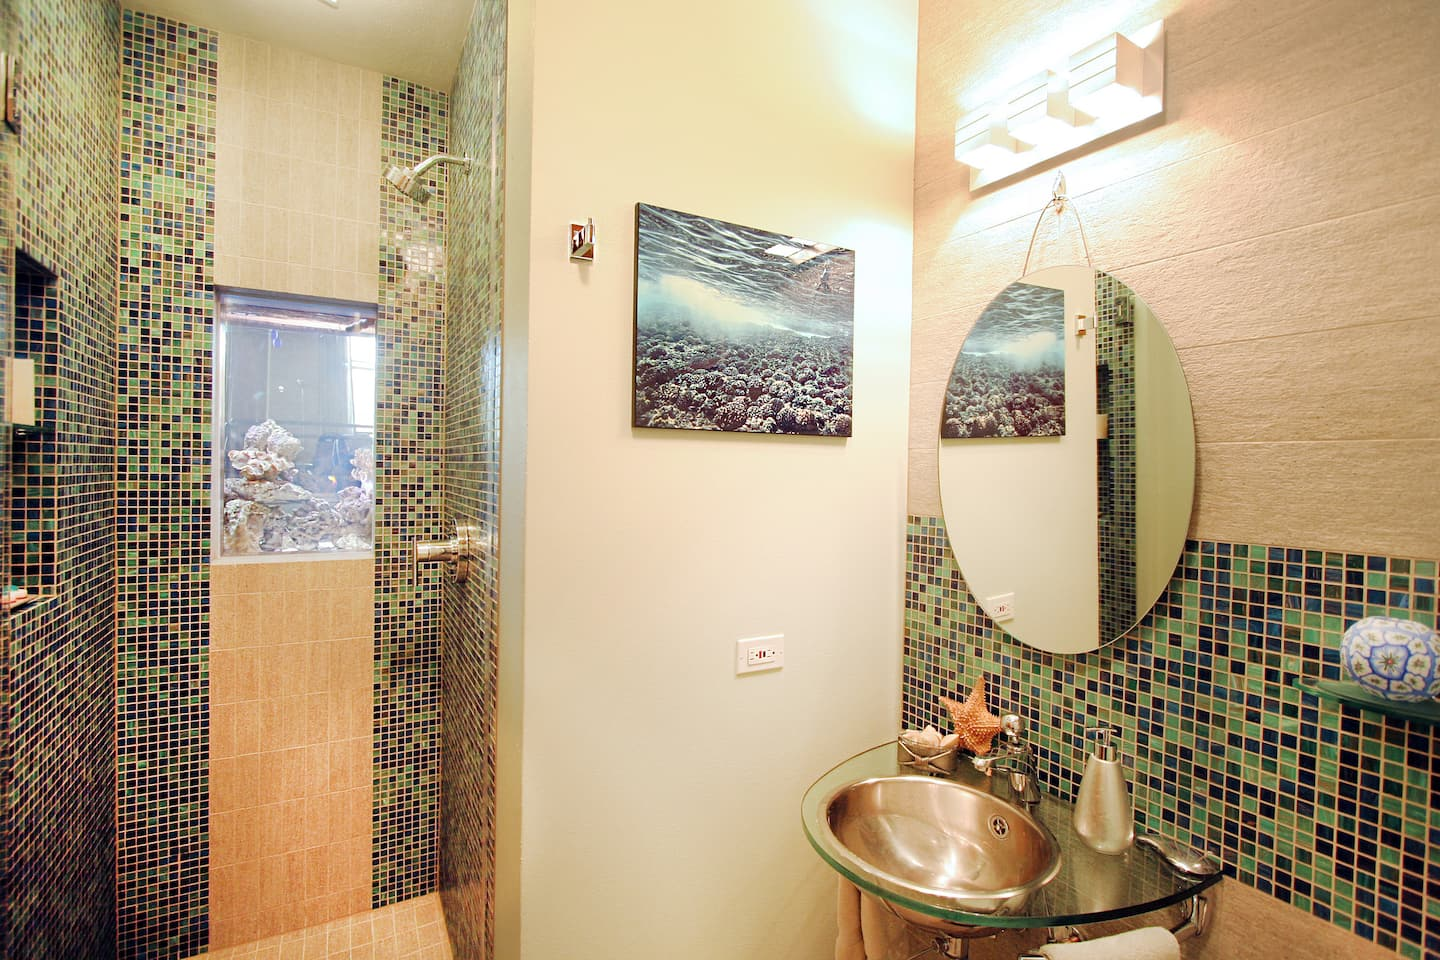 Refit bathroom cost - Shower With Fish Tank